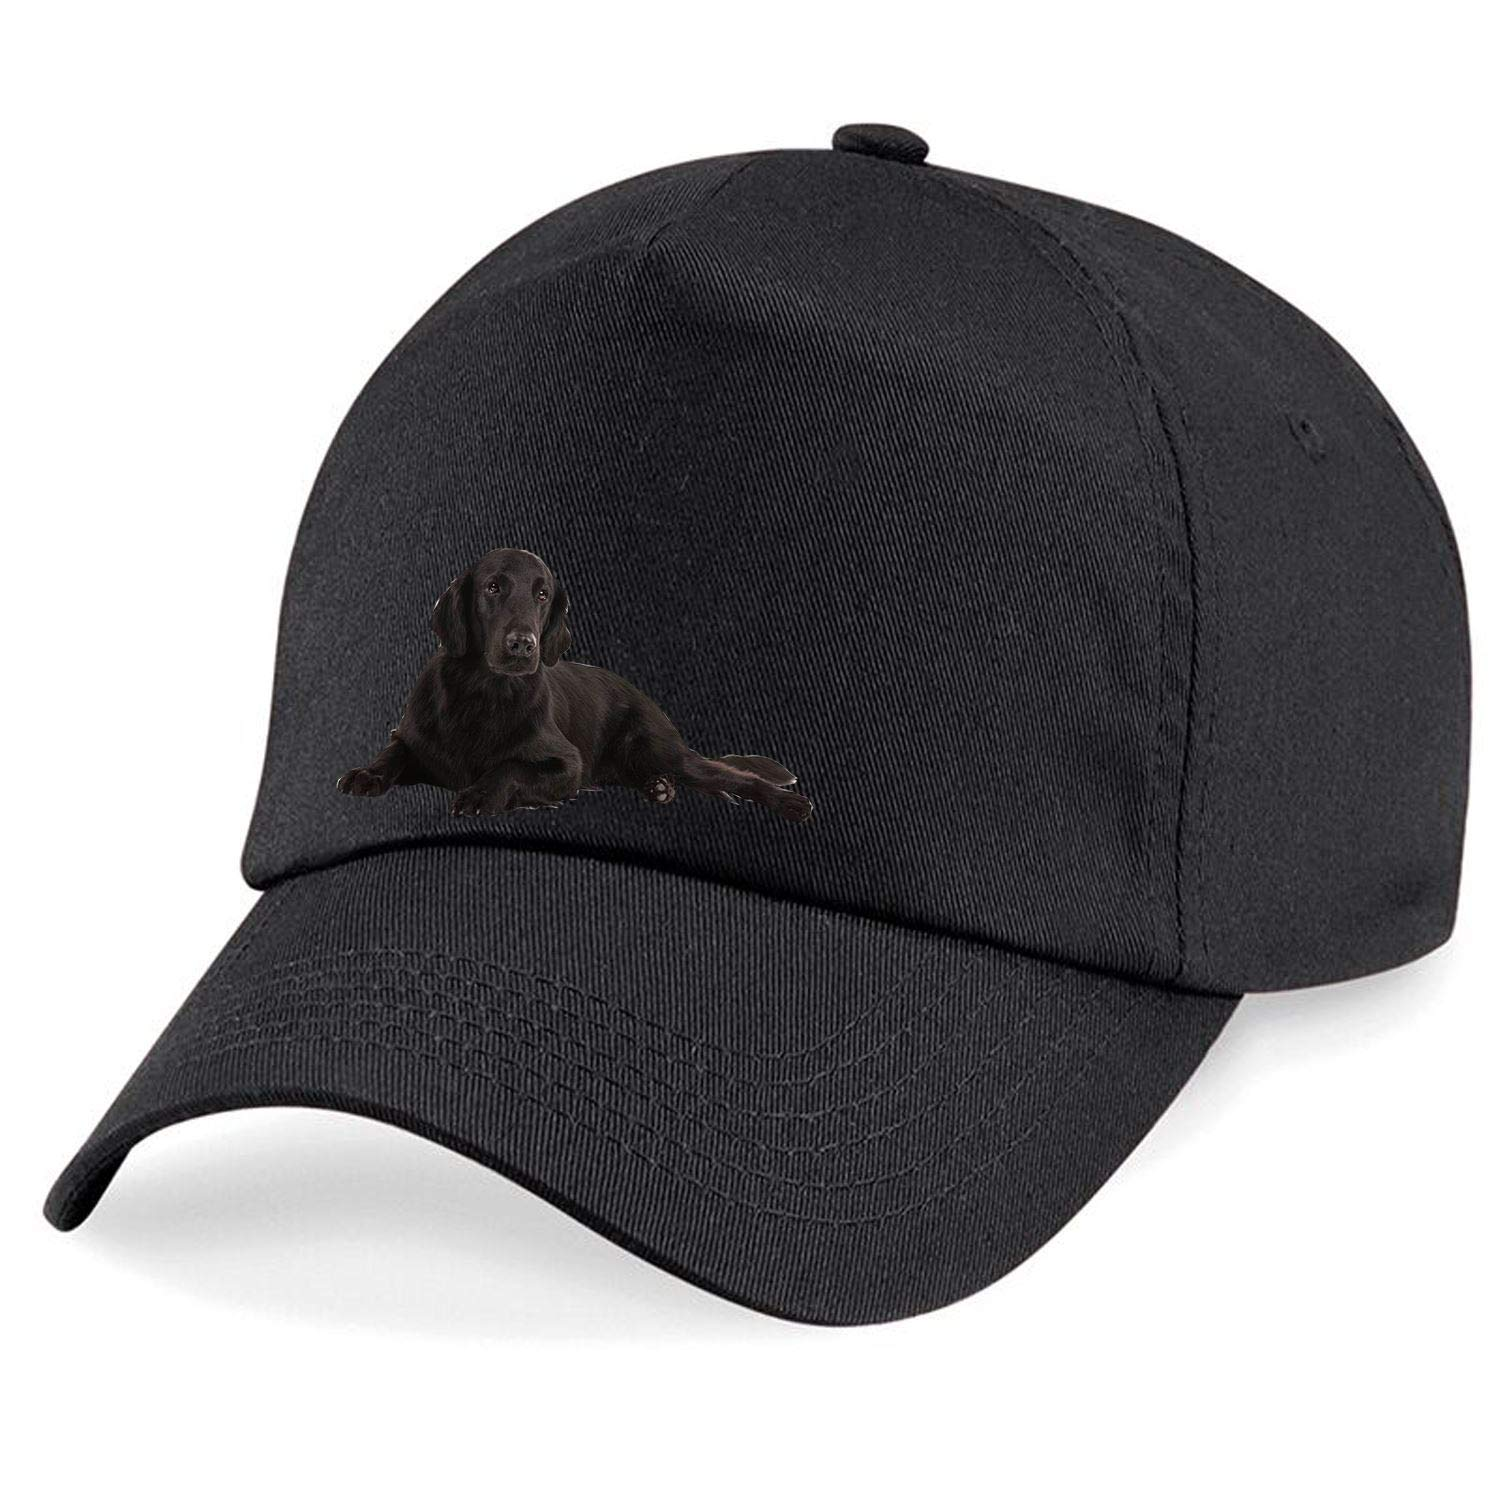 Taurus Clothing Flat-Coated Retriever Dog Personalised Embroidered Cap Black